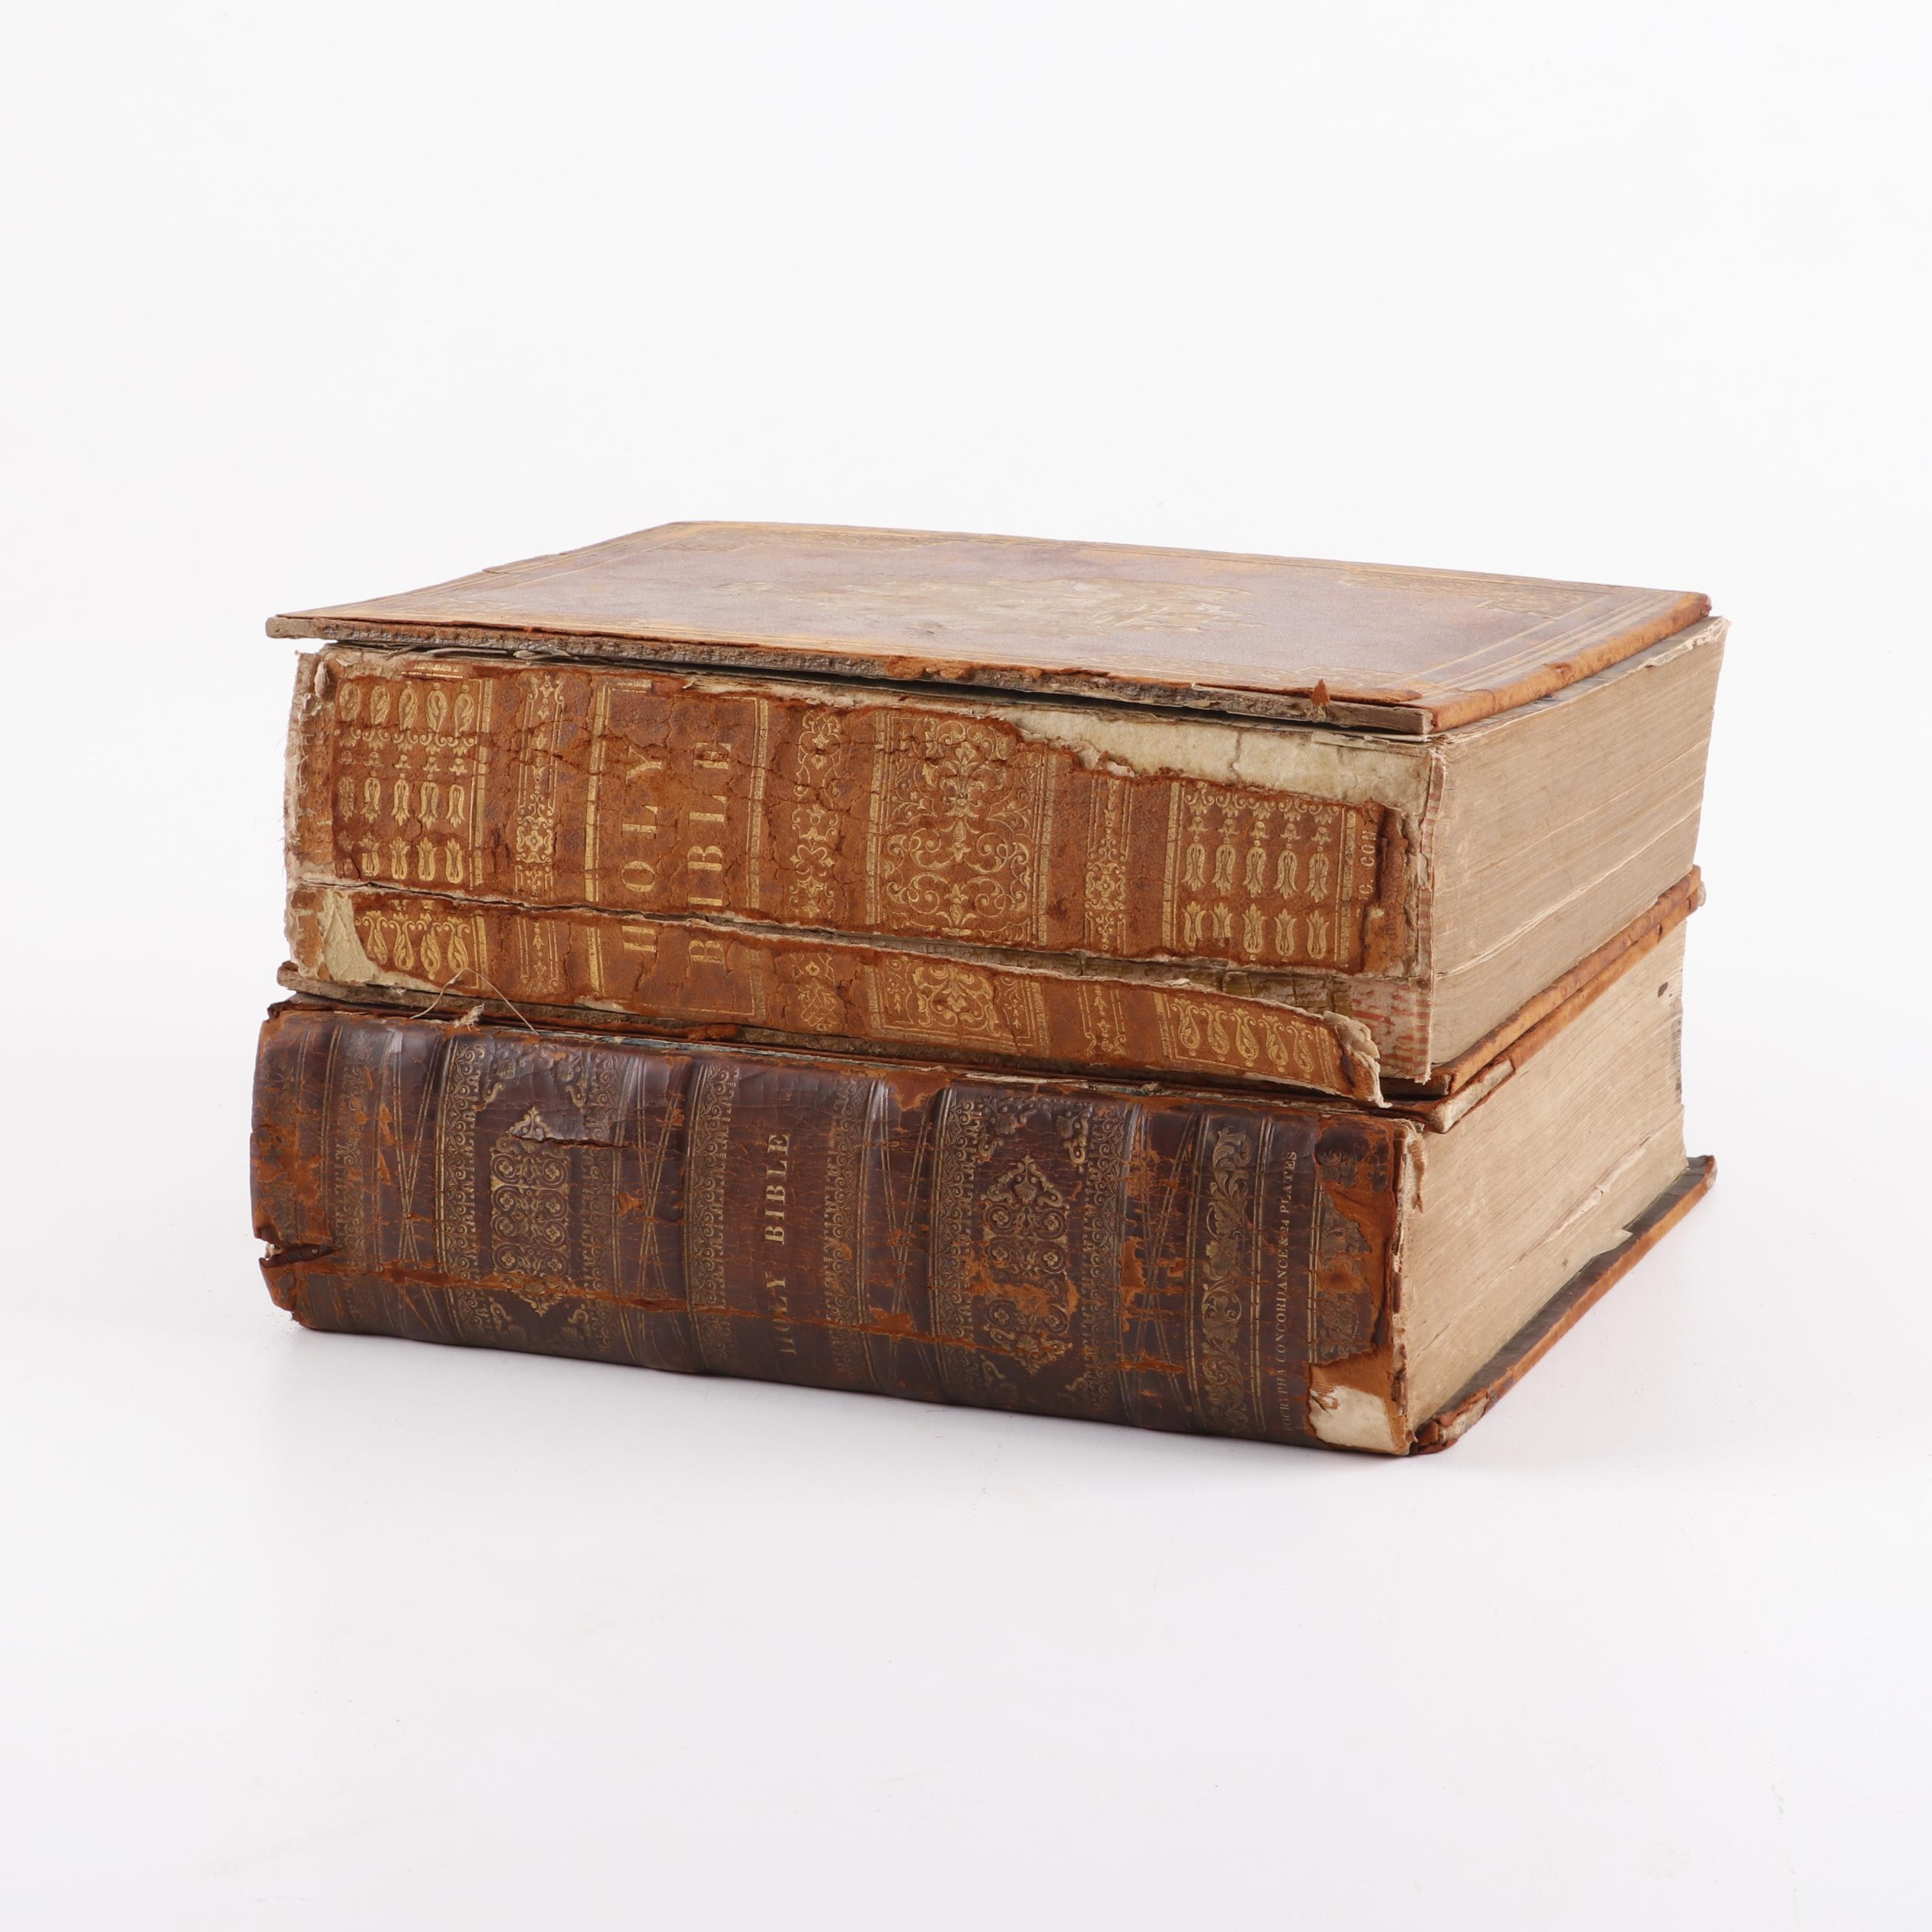 1834 and 1850 Leather Bound Bibles